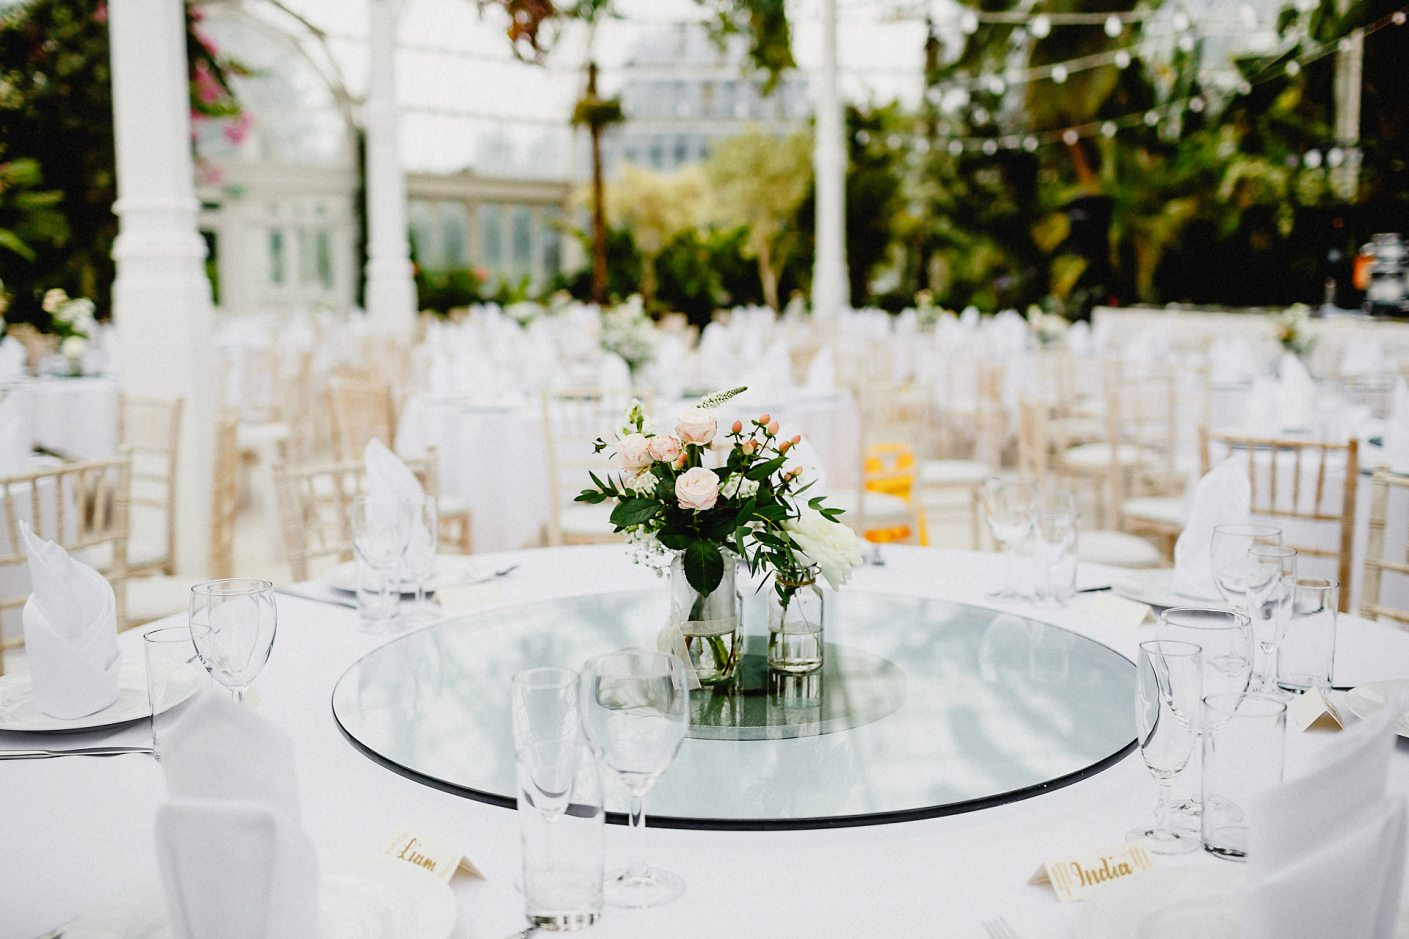 tables for the weding breakfast